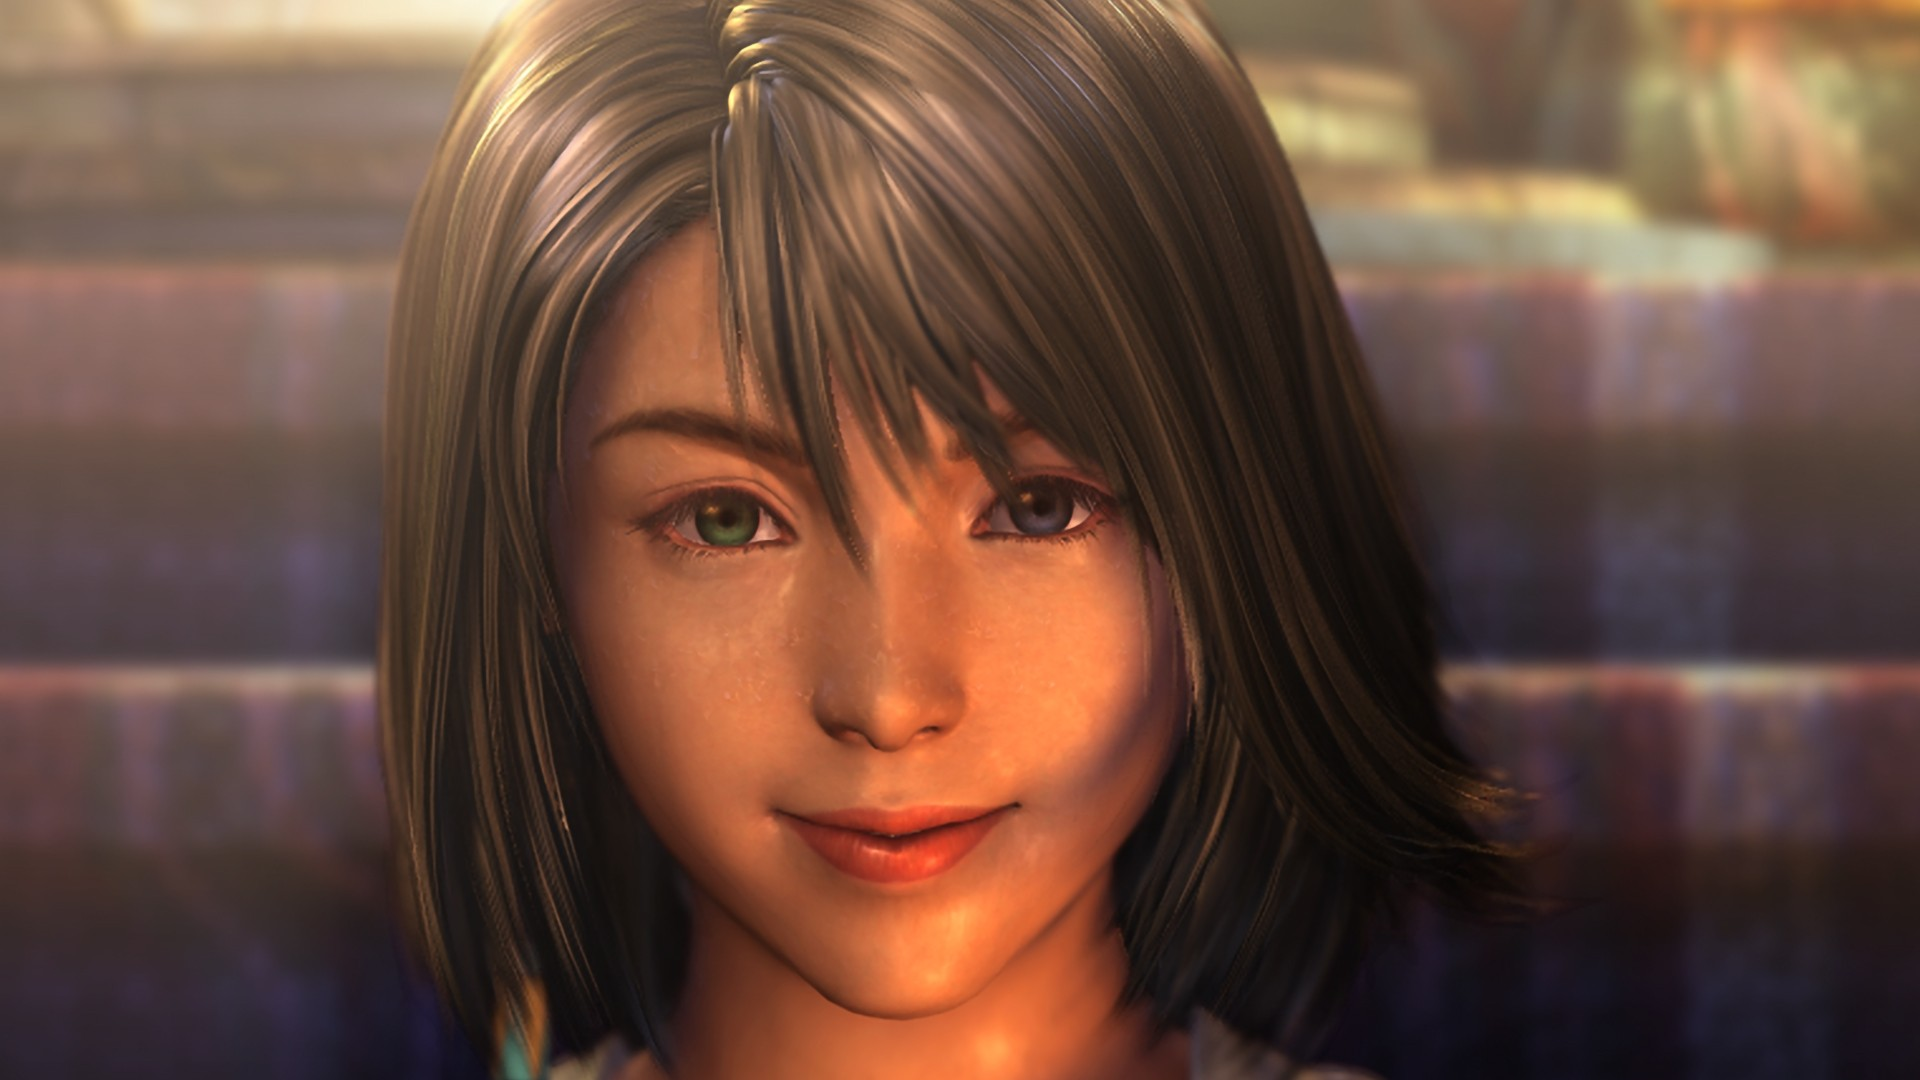 final fantasy x x 2 remastered 4 - [Đánh giá game] Final Fantasy X / X-2 Remastered